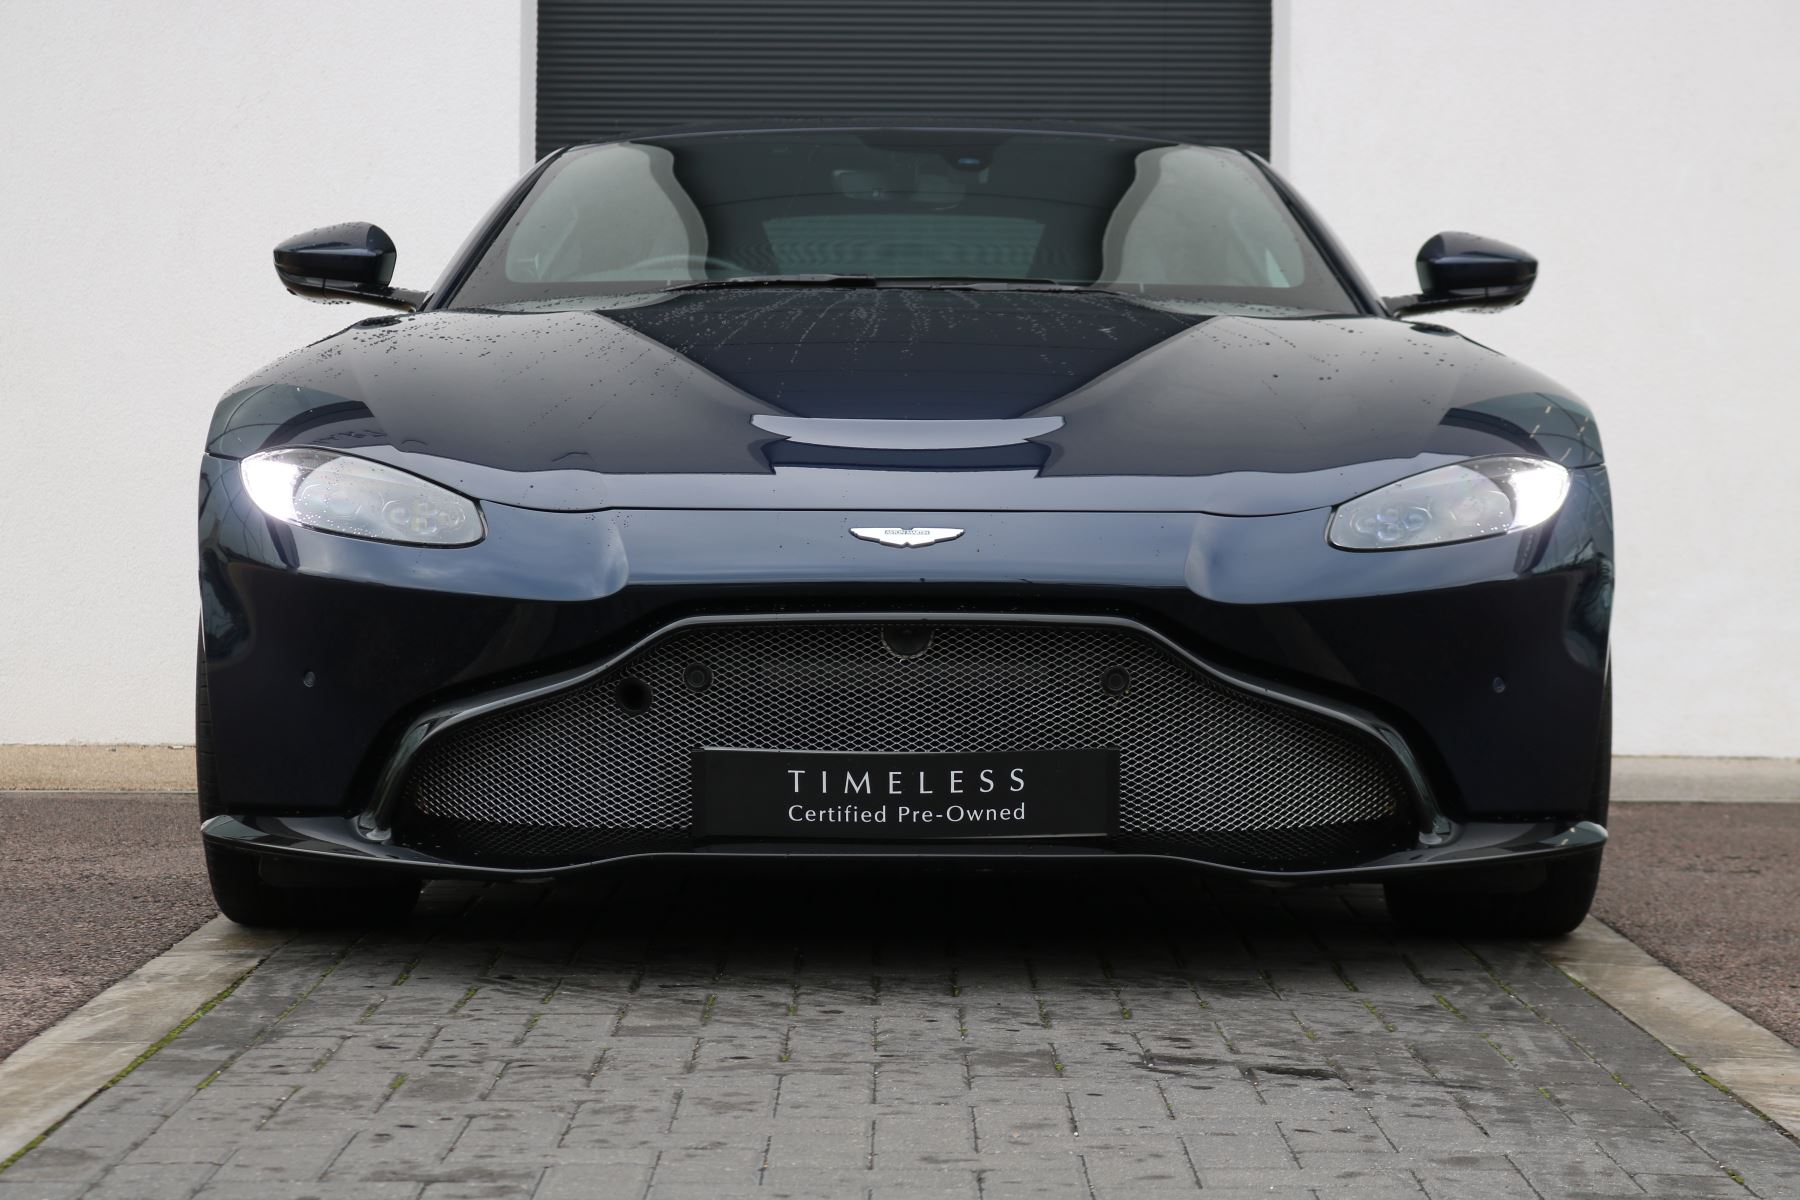 Aston Martin New Vantage 2dr ZF 8 Speed Free Servicing  4.0 Automatic 3 door Coupe